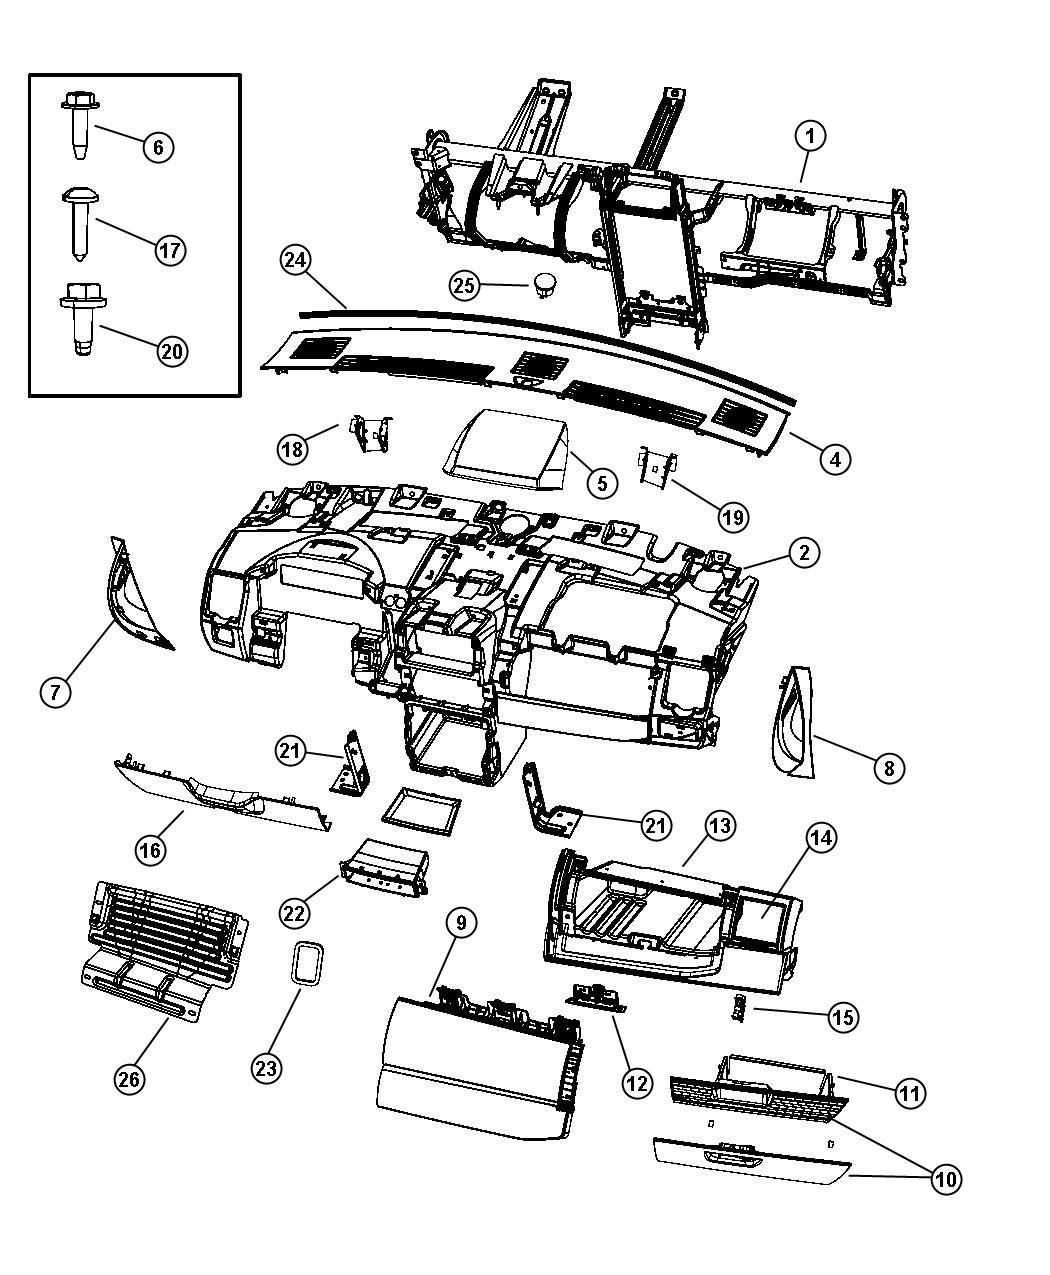 2010 dodge grand caravan belt diagram sketch coloring page